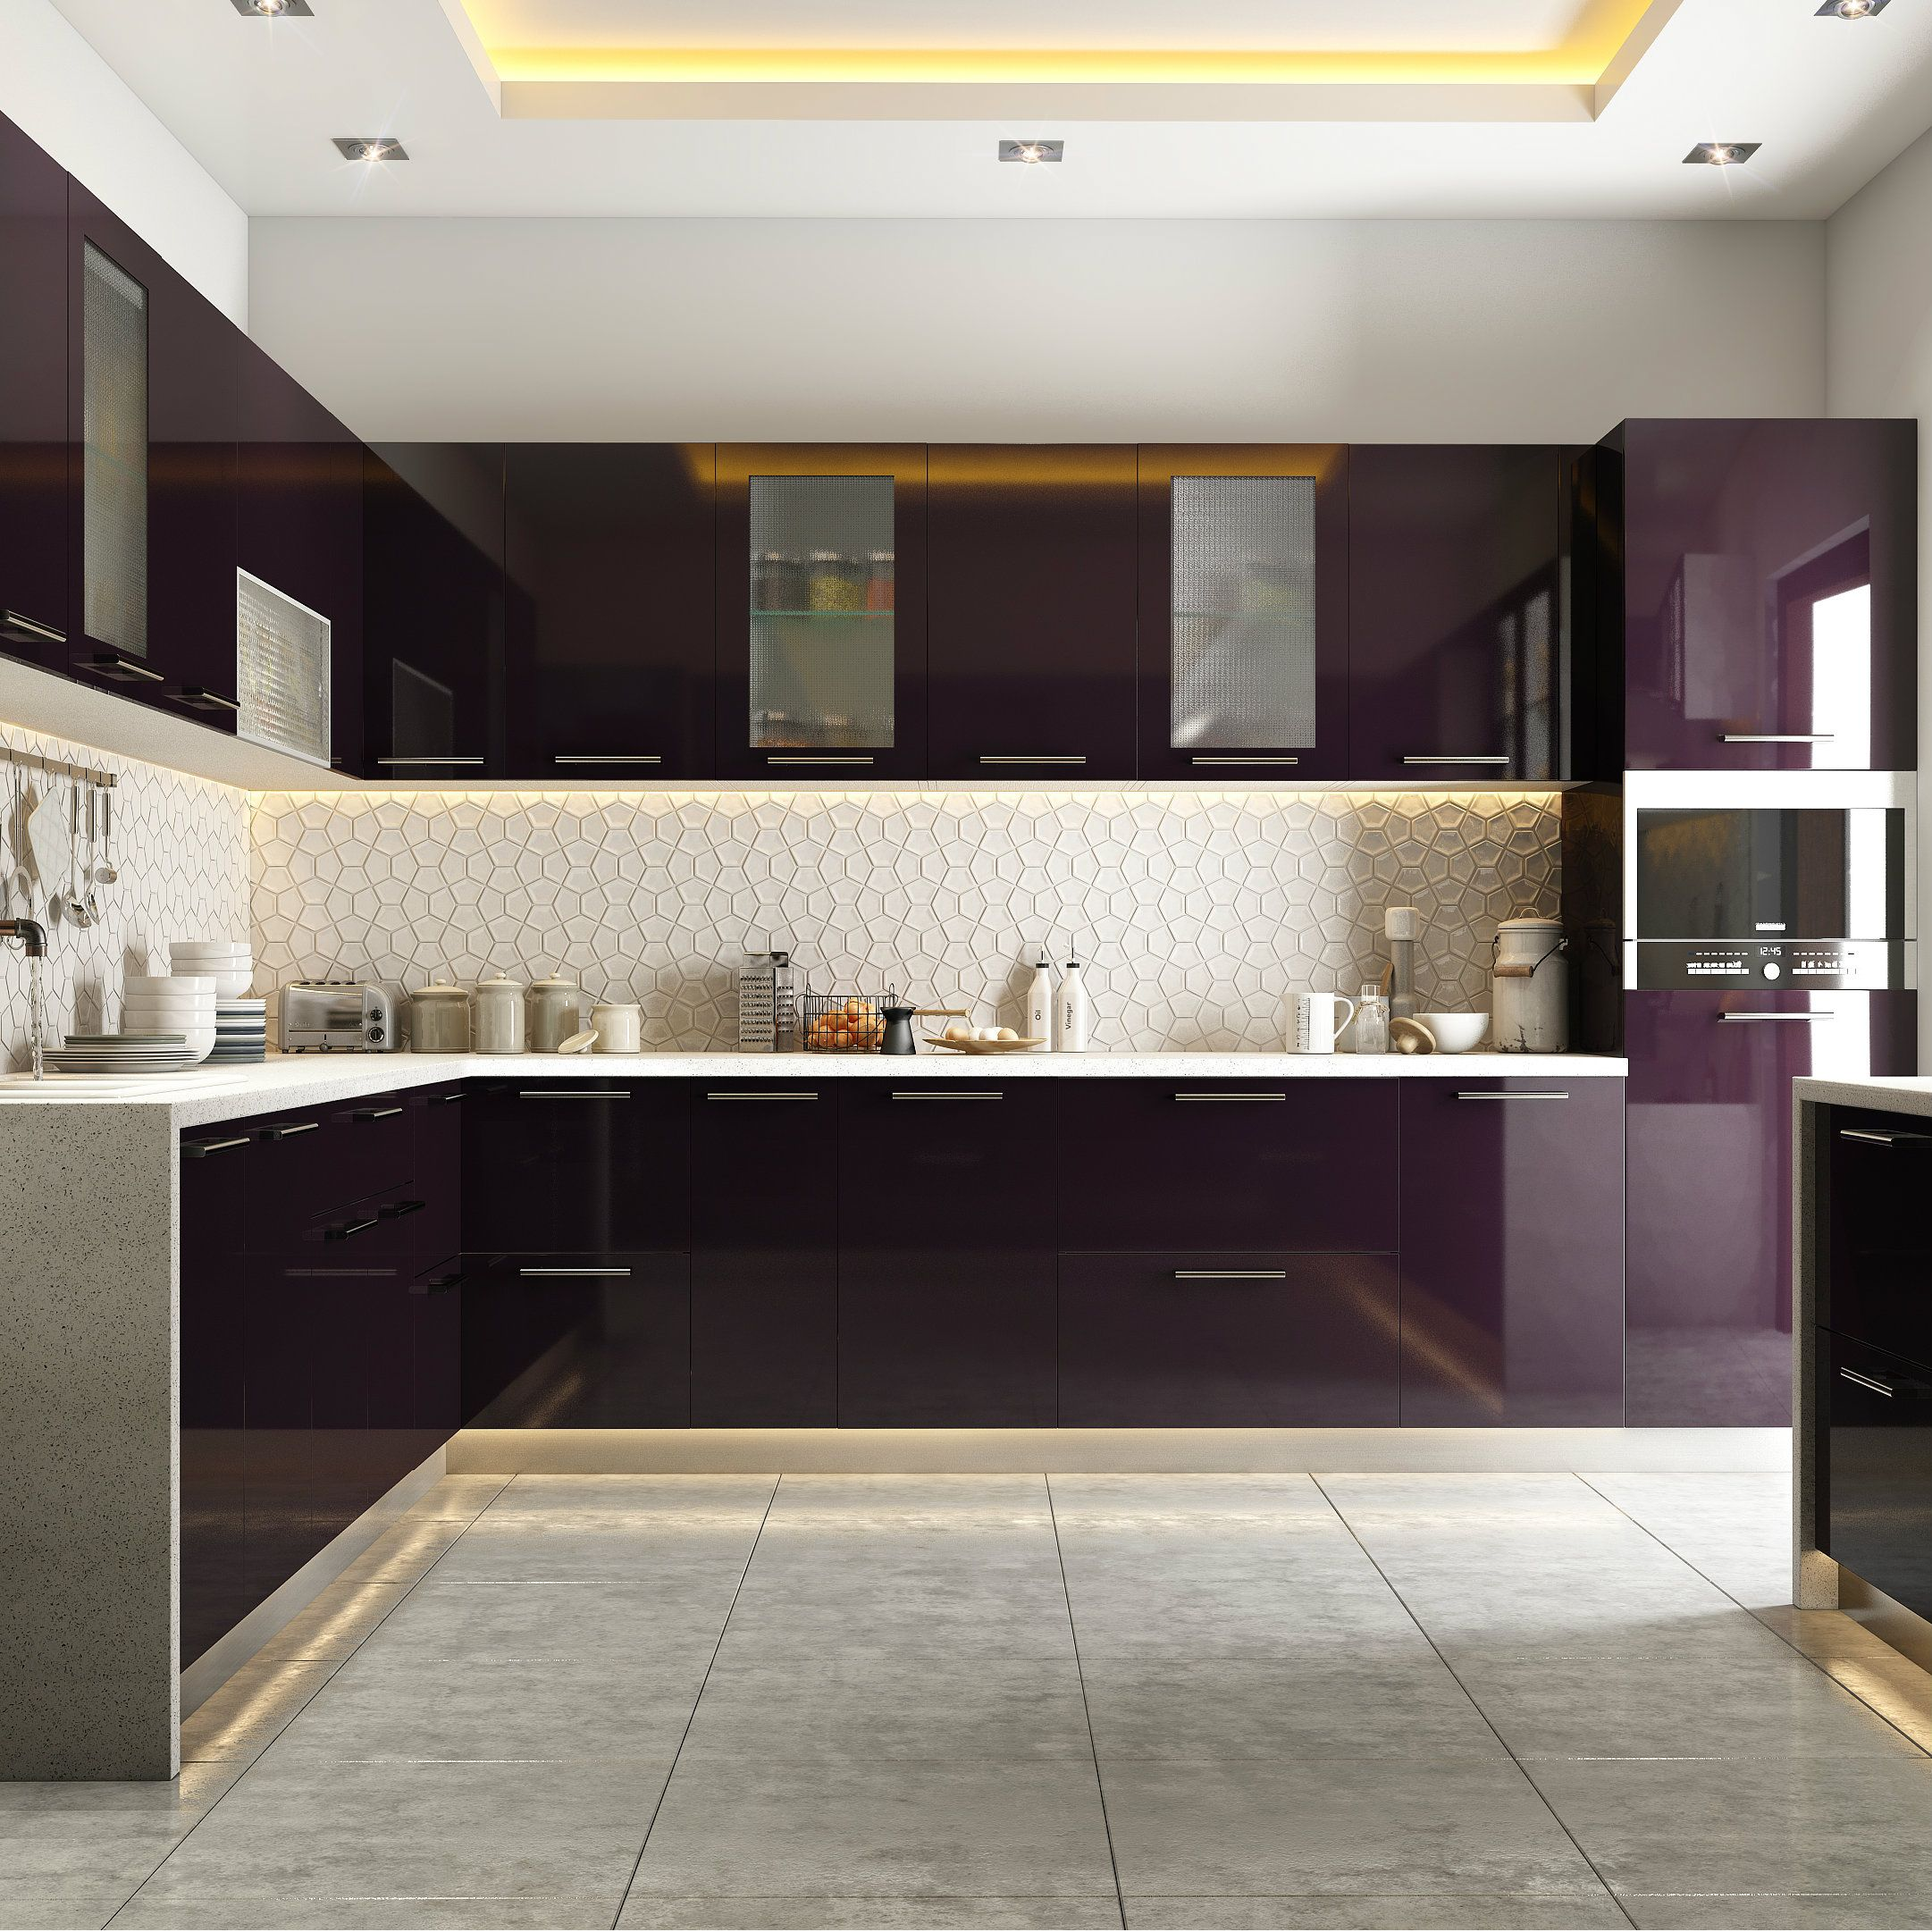 kkkkkk kitchen inspirational modern modular kerala cabinets artmicha awesome of cabinet